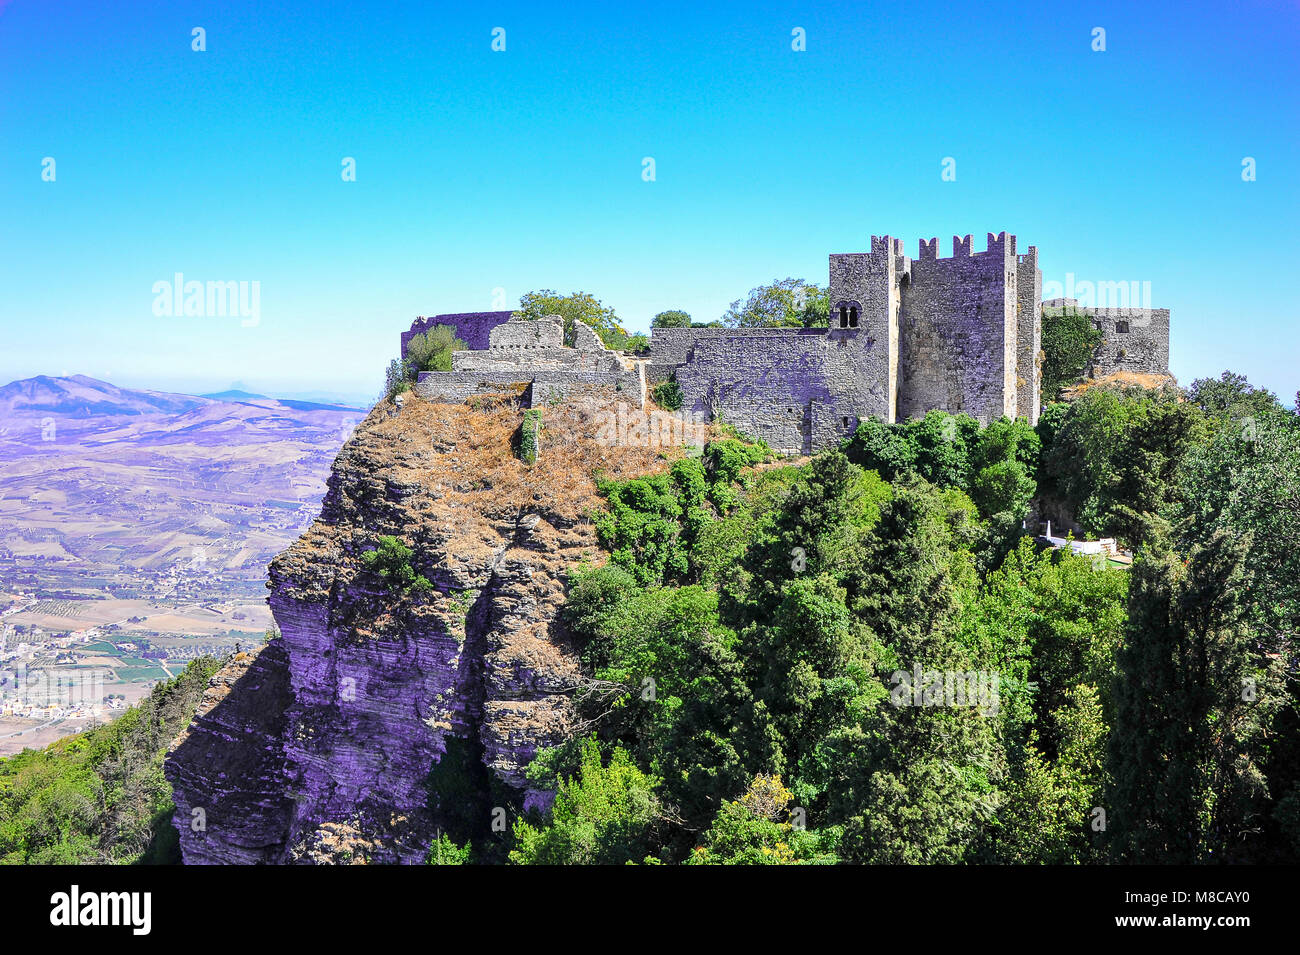 Castello di Venere (Castle of Venus), perches on top Mount Erice, Sicily. Ancient Norman ruins on a green mountainside - Stock Image